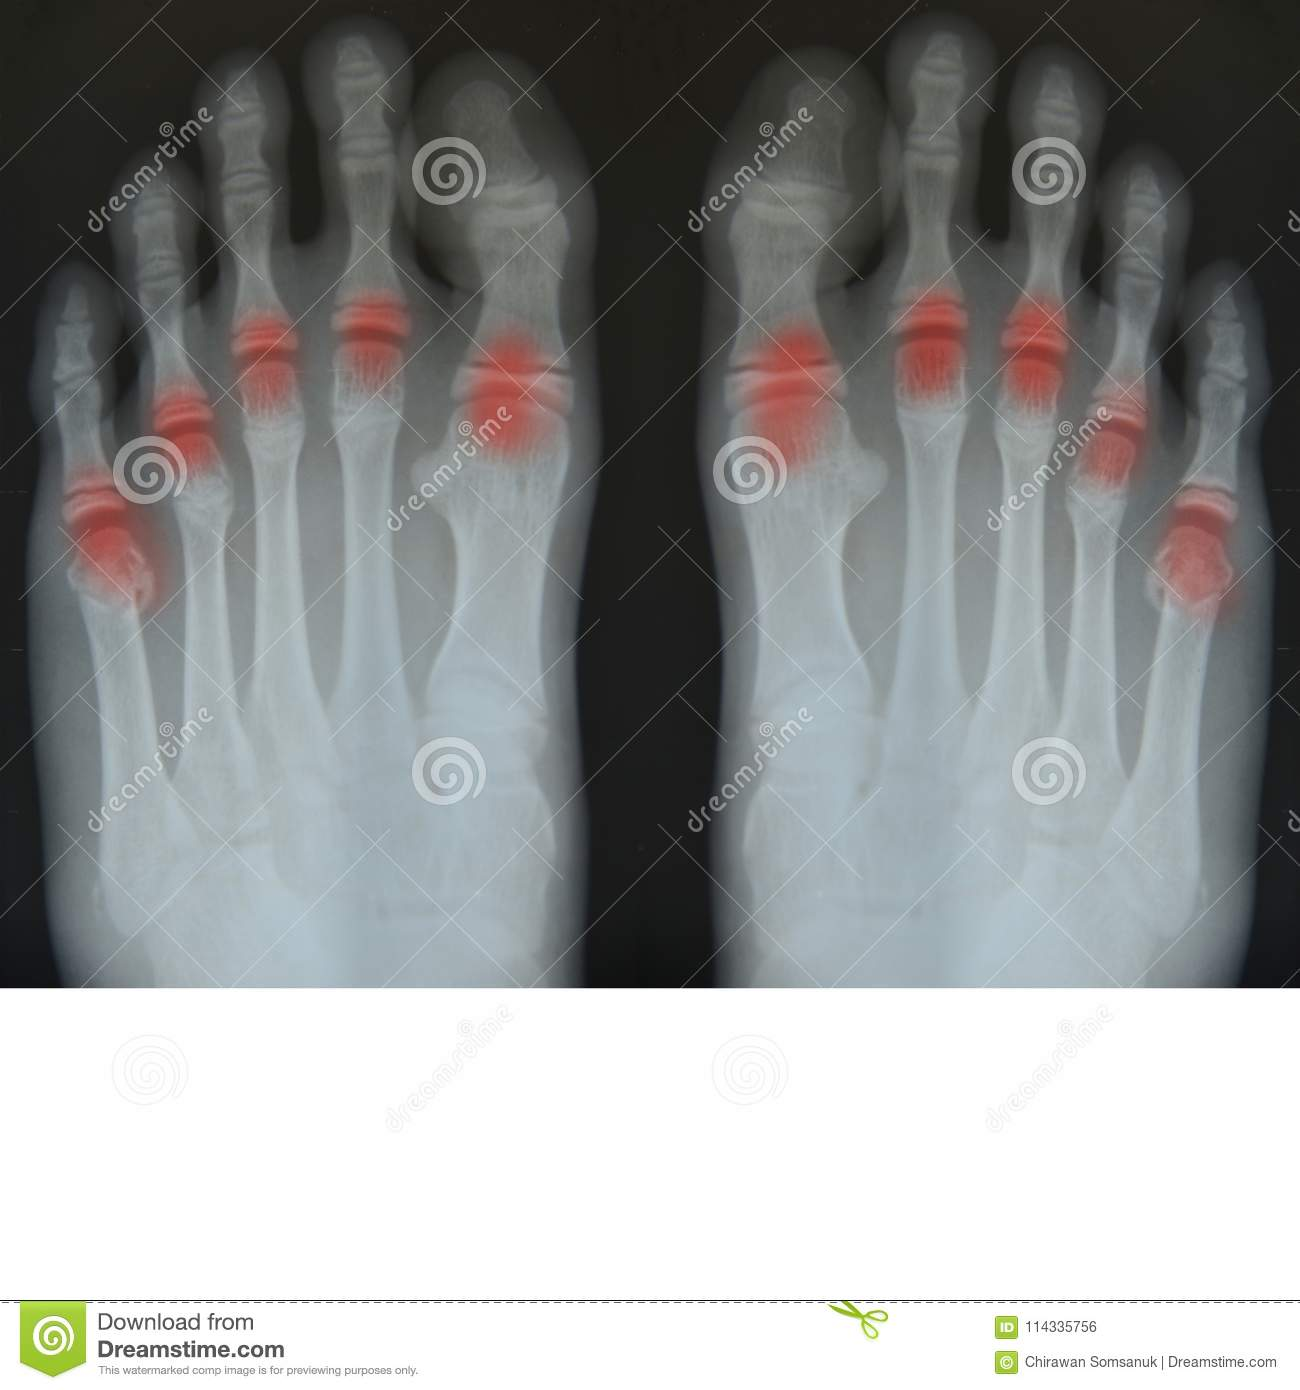 Bone Of Foot X Ray Film Stock Photo Image Of Diagnosis 114335756